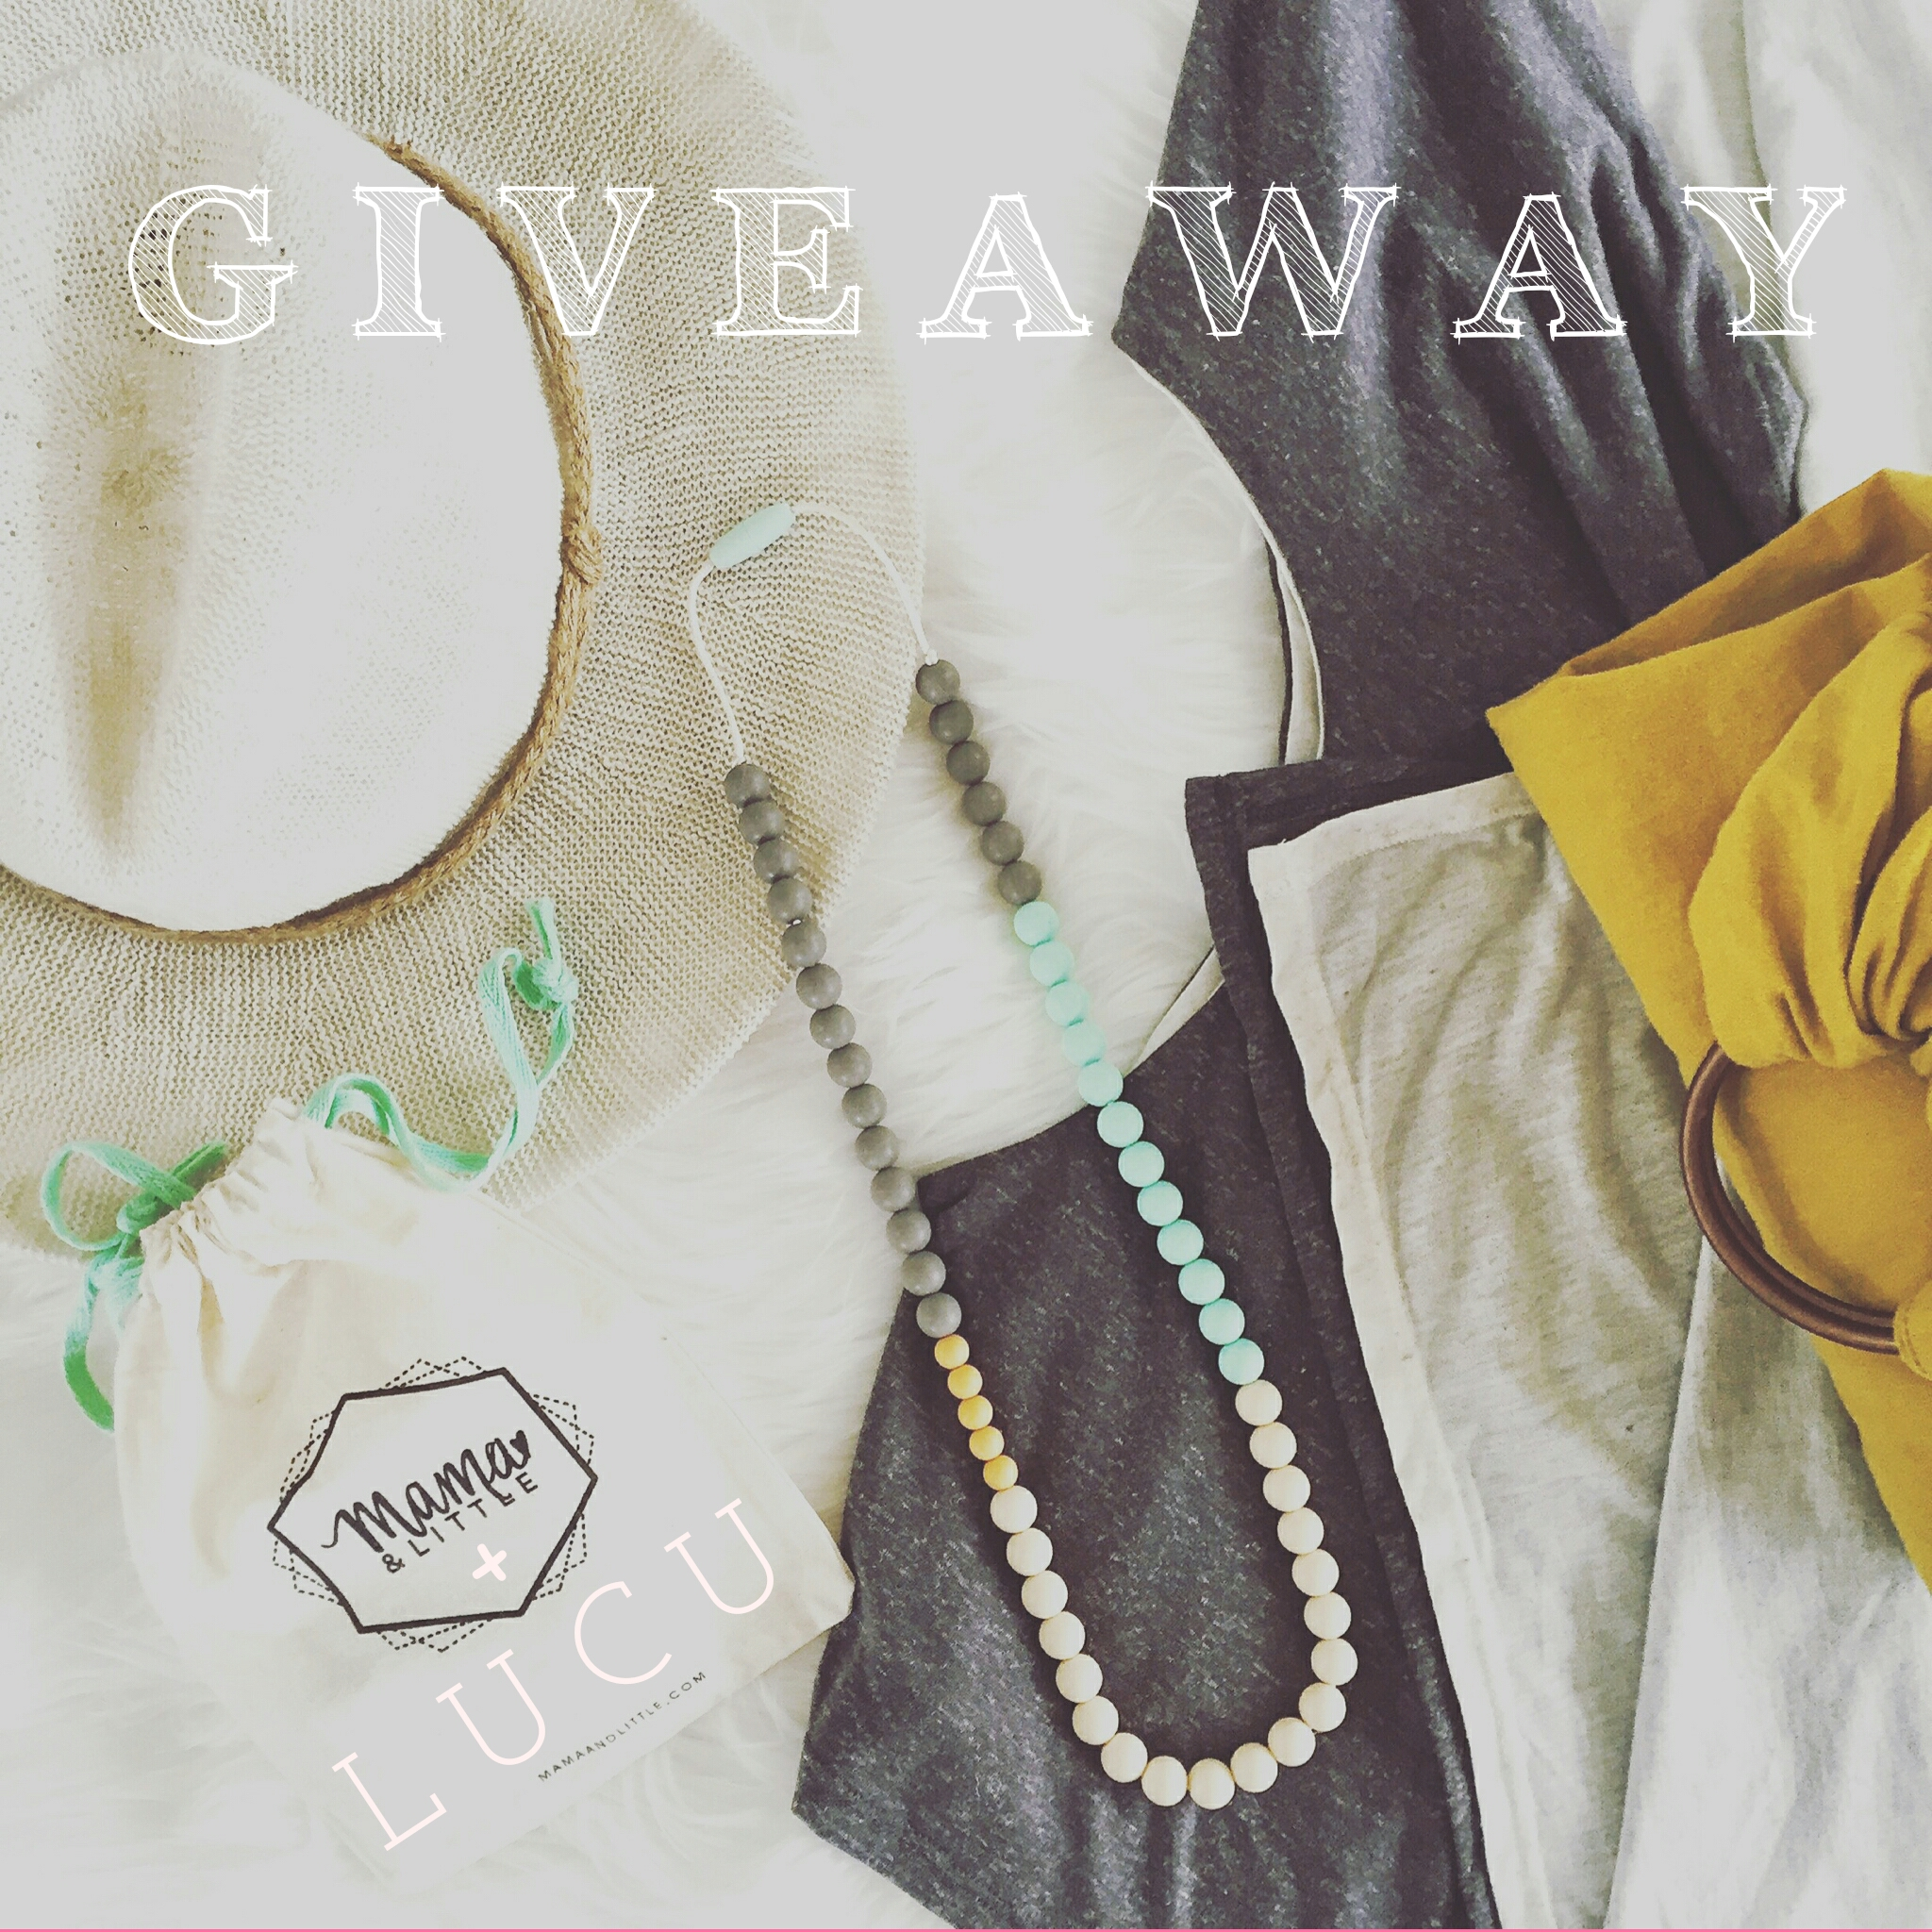 My diaper bag musts: Lucu Nest in Charcoal/ Oatmeal, Mama & Little Olivia Necklace in Sweet Mint, a Ring Sling, and a sun hat.